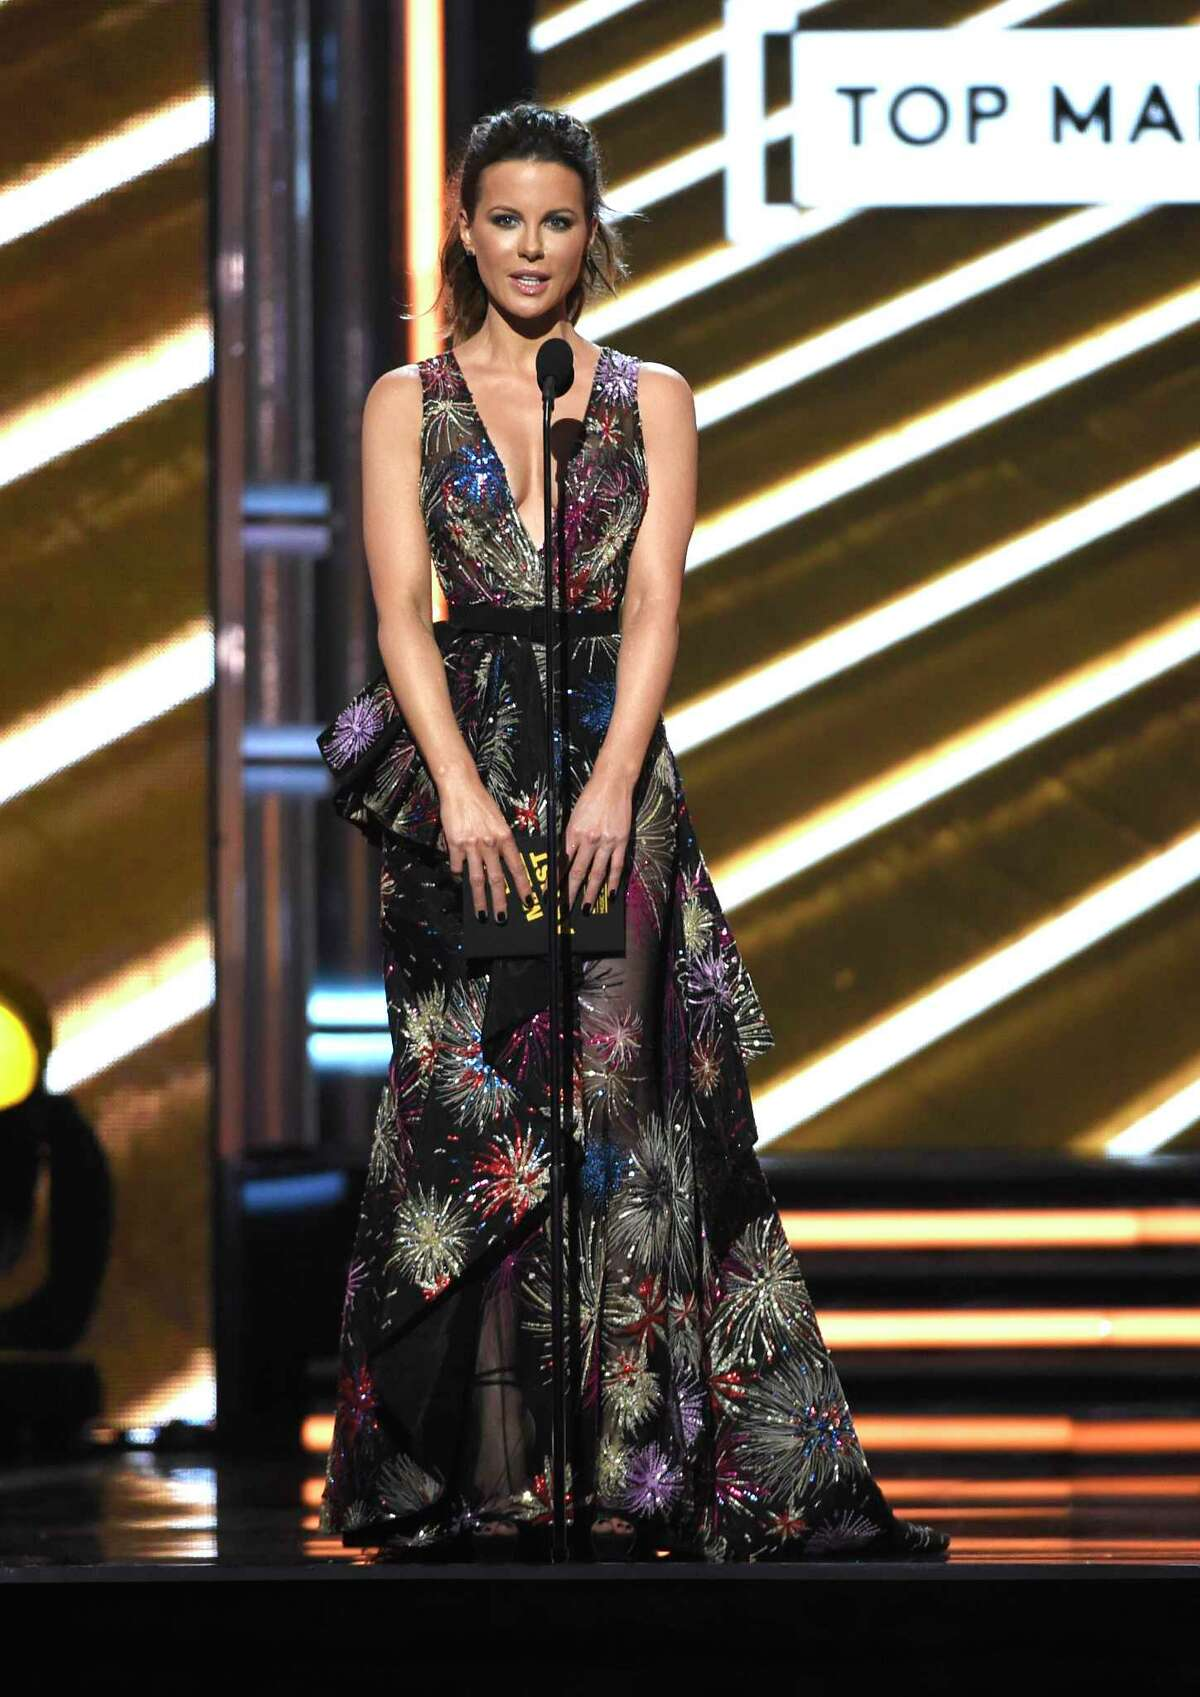 Kate Beckinsale presents the award for top male artist at the Billboard Music Awards at the T-Mobile Arena on Sunday, May 21, 2017, in Las Vegas. (Photo by Chris Pizzello/Invision/AP)